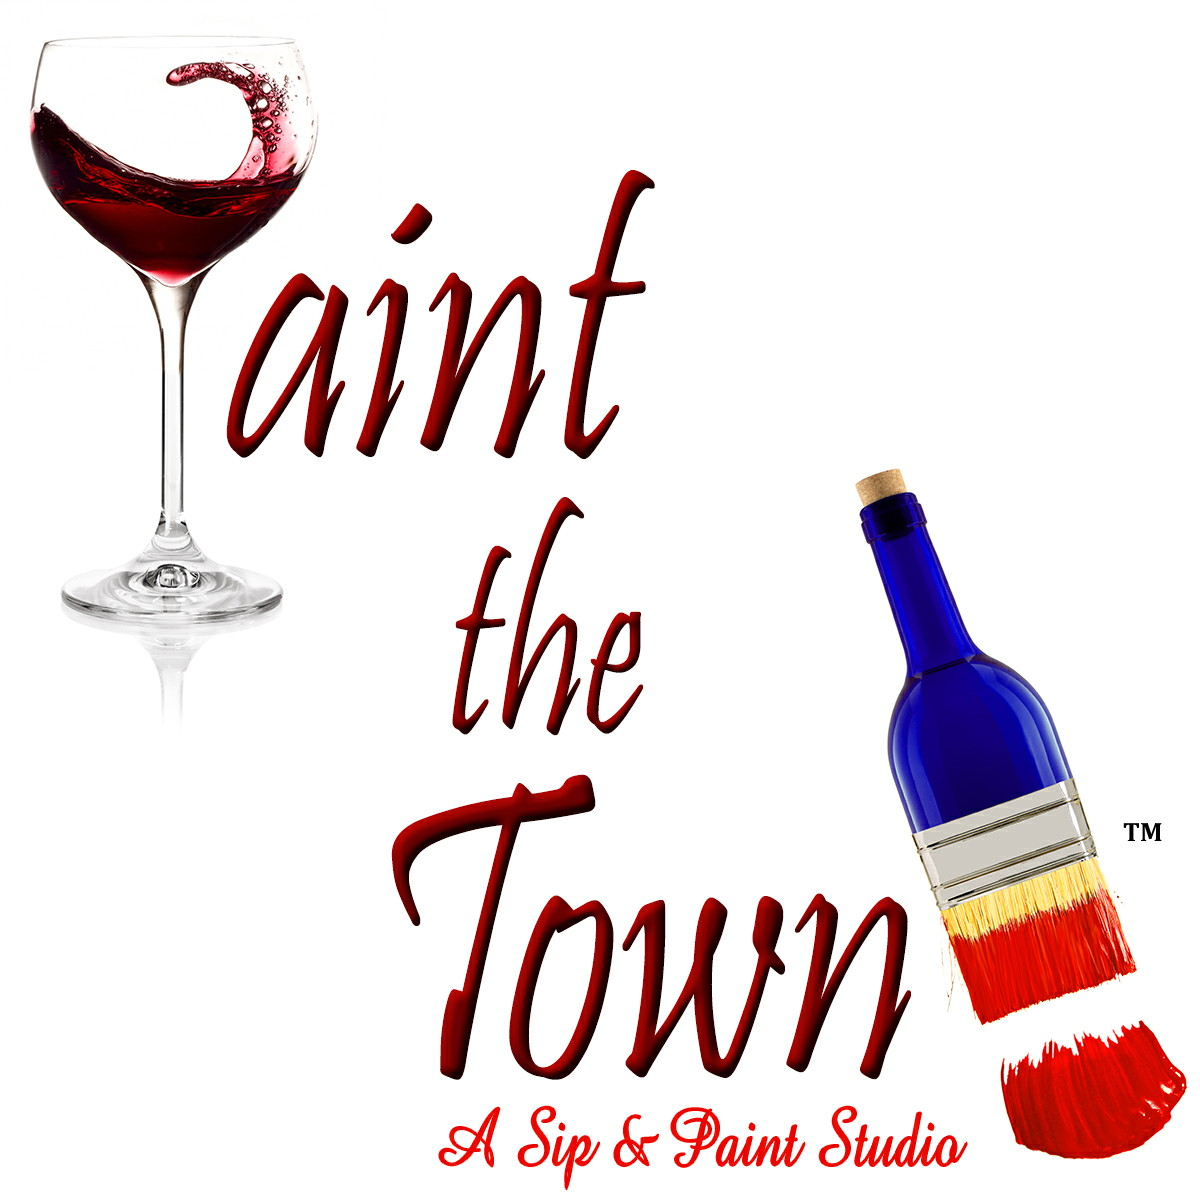 Paint The Town Studios LLC | Cranston, RI-A Rhode Island paint and wine studio